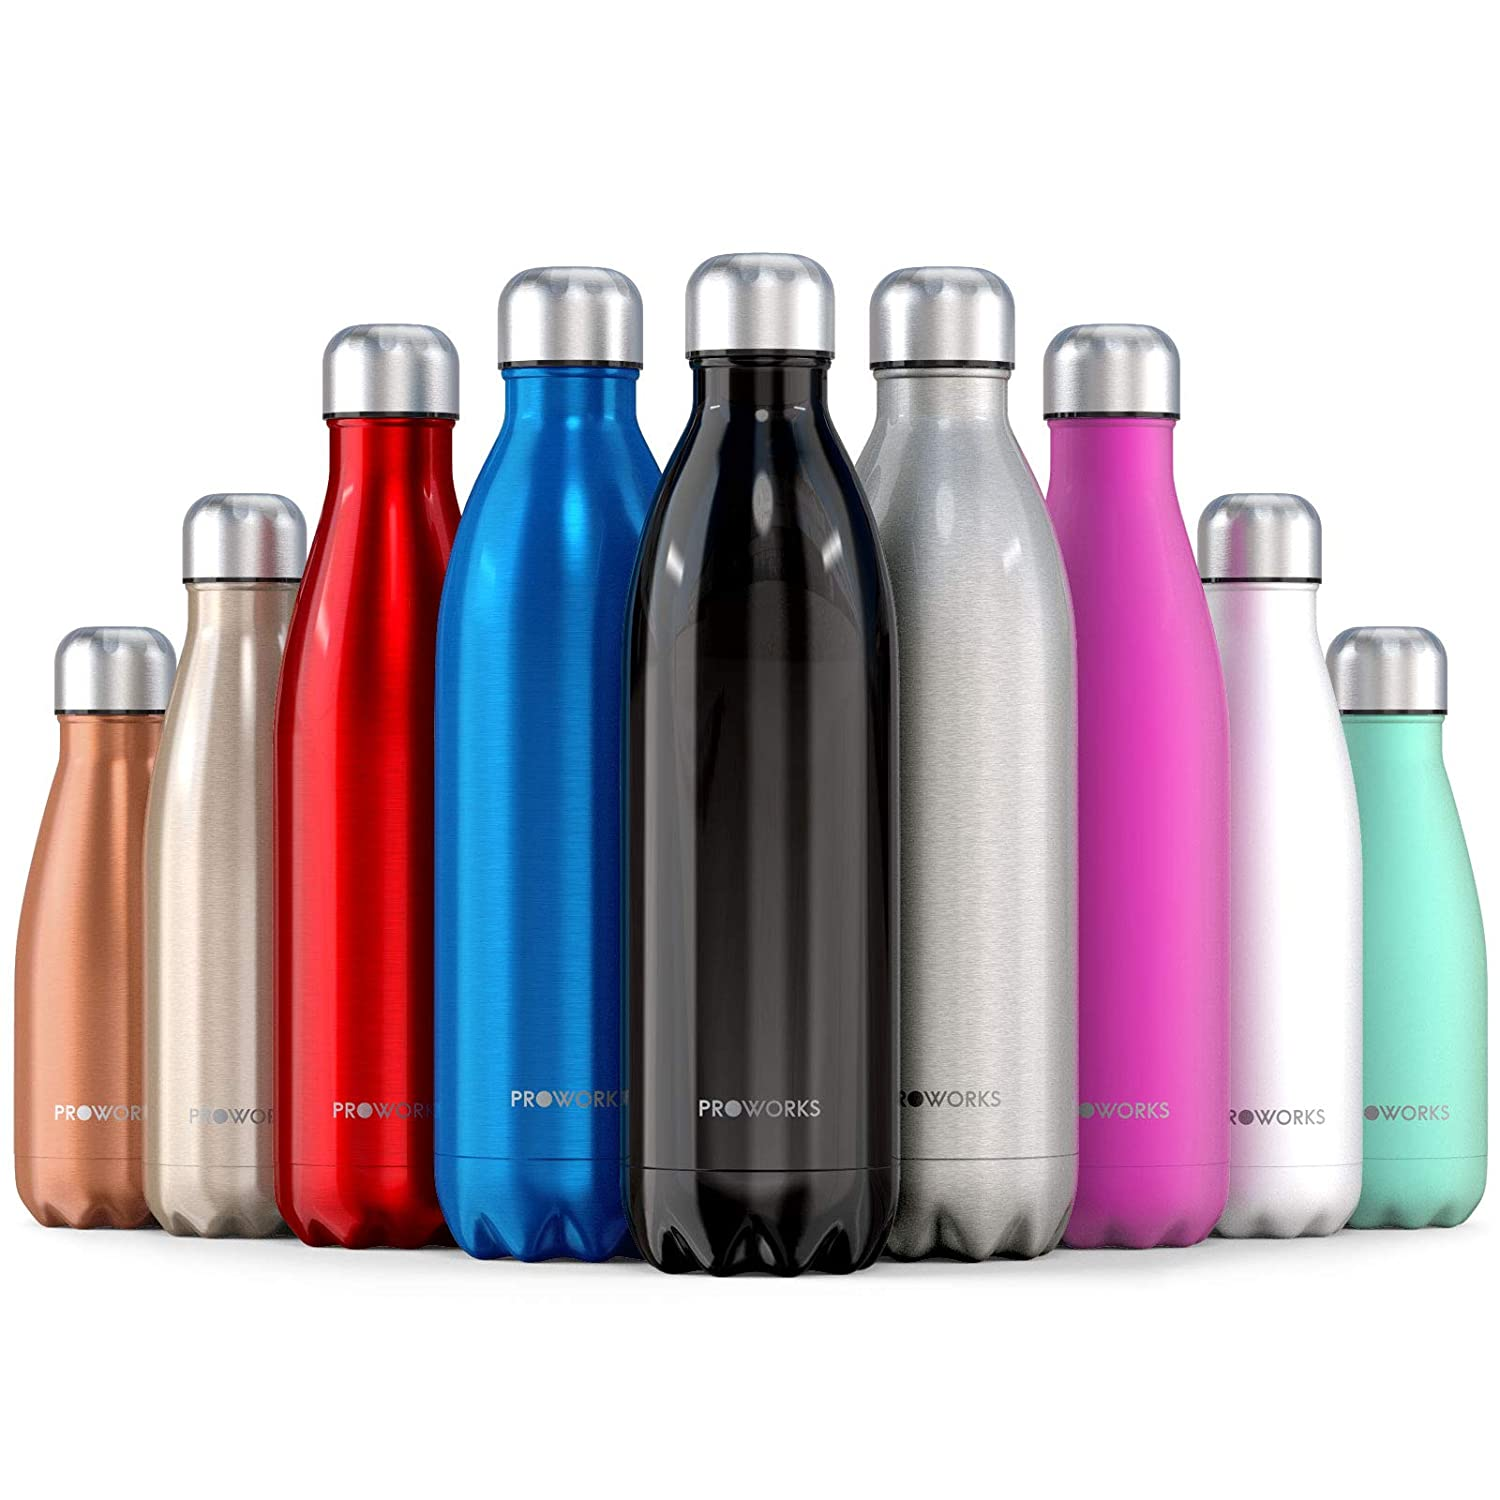 Proworks Stainless Steel Water Bottle, BPA Free Vacuum Insulated Metal  Water Bottle for 12 Hours Hot & 24 Hours Cold Drinks, Sports Flask Great  for